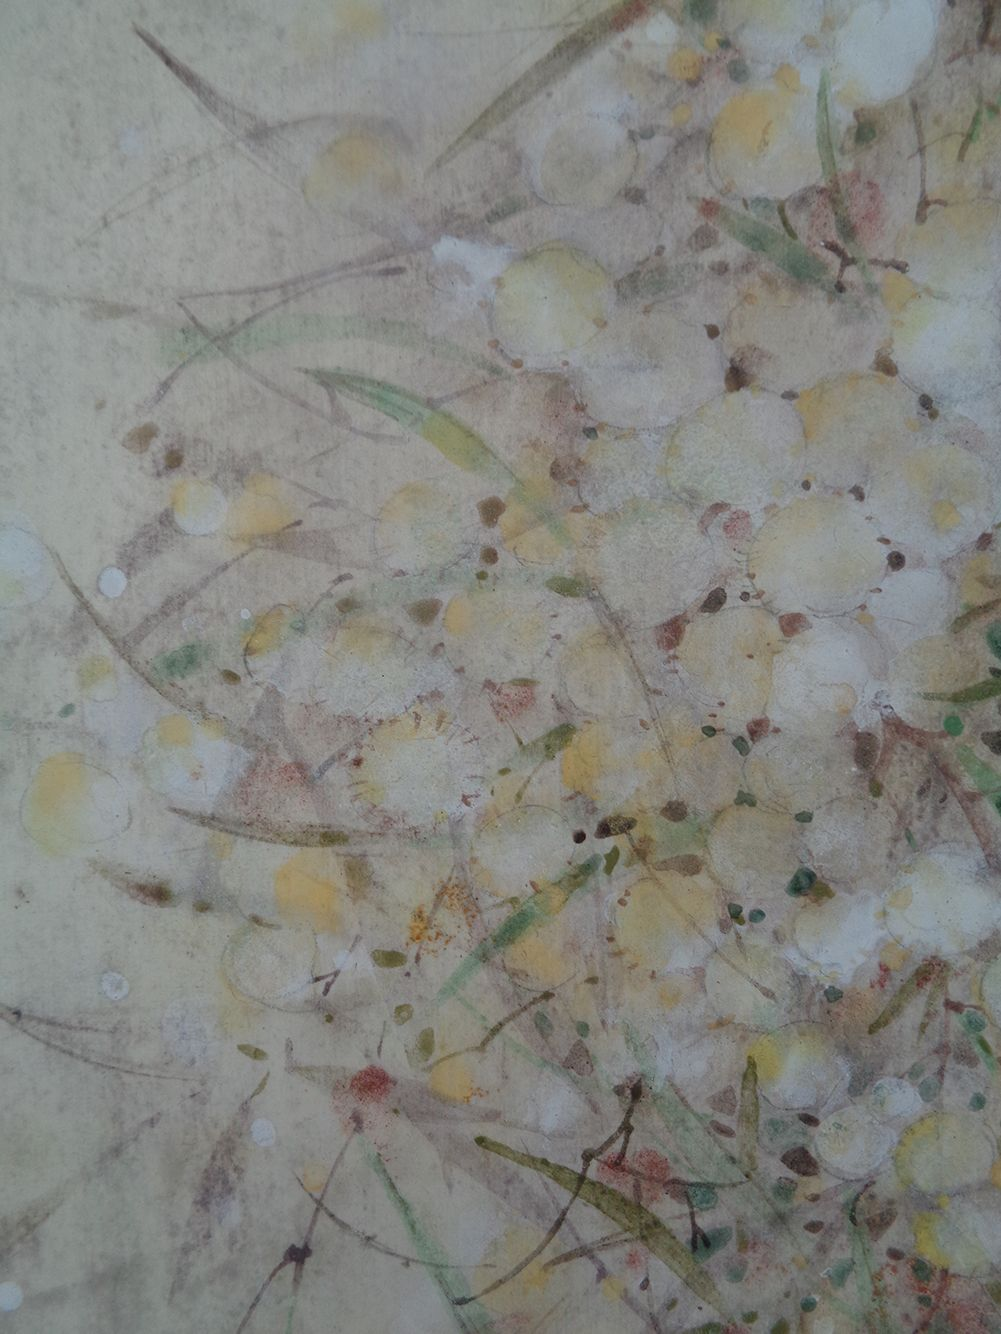 Research III,Chen Yiching,Contemporary painting, detail 3